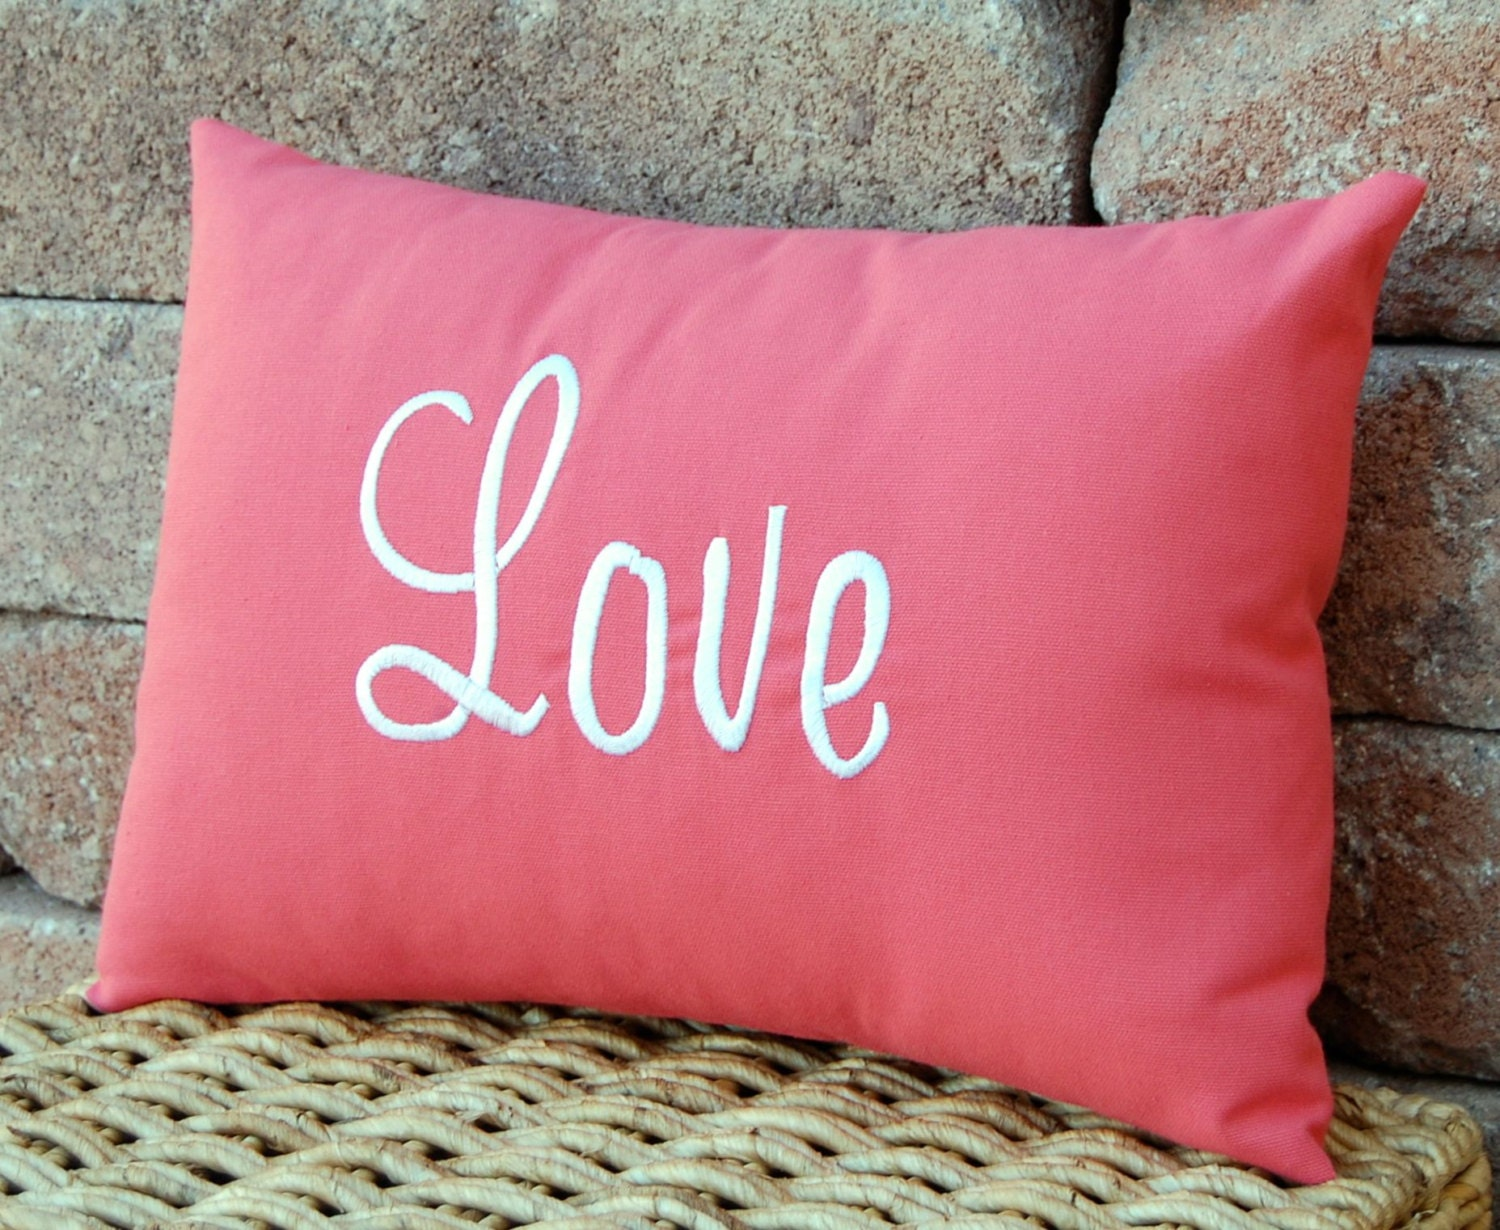 Valentines Day Personalized Gift Decor Coral Pillow Love Monogrammed Gift Decorative Throw Pillow 12 x 16 - FestiveHomeDecor